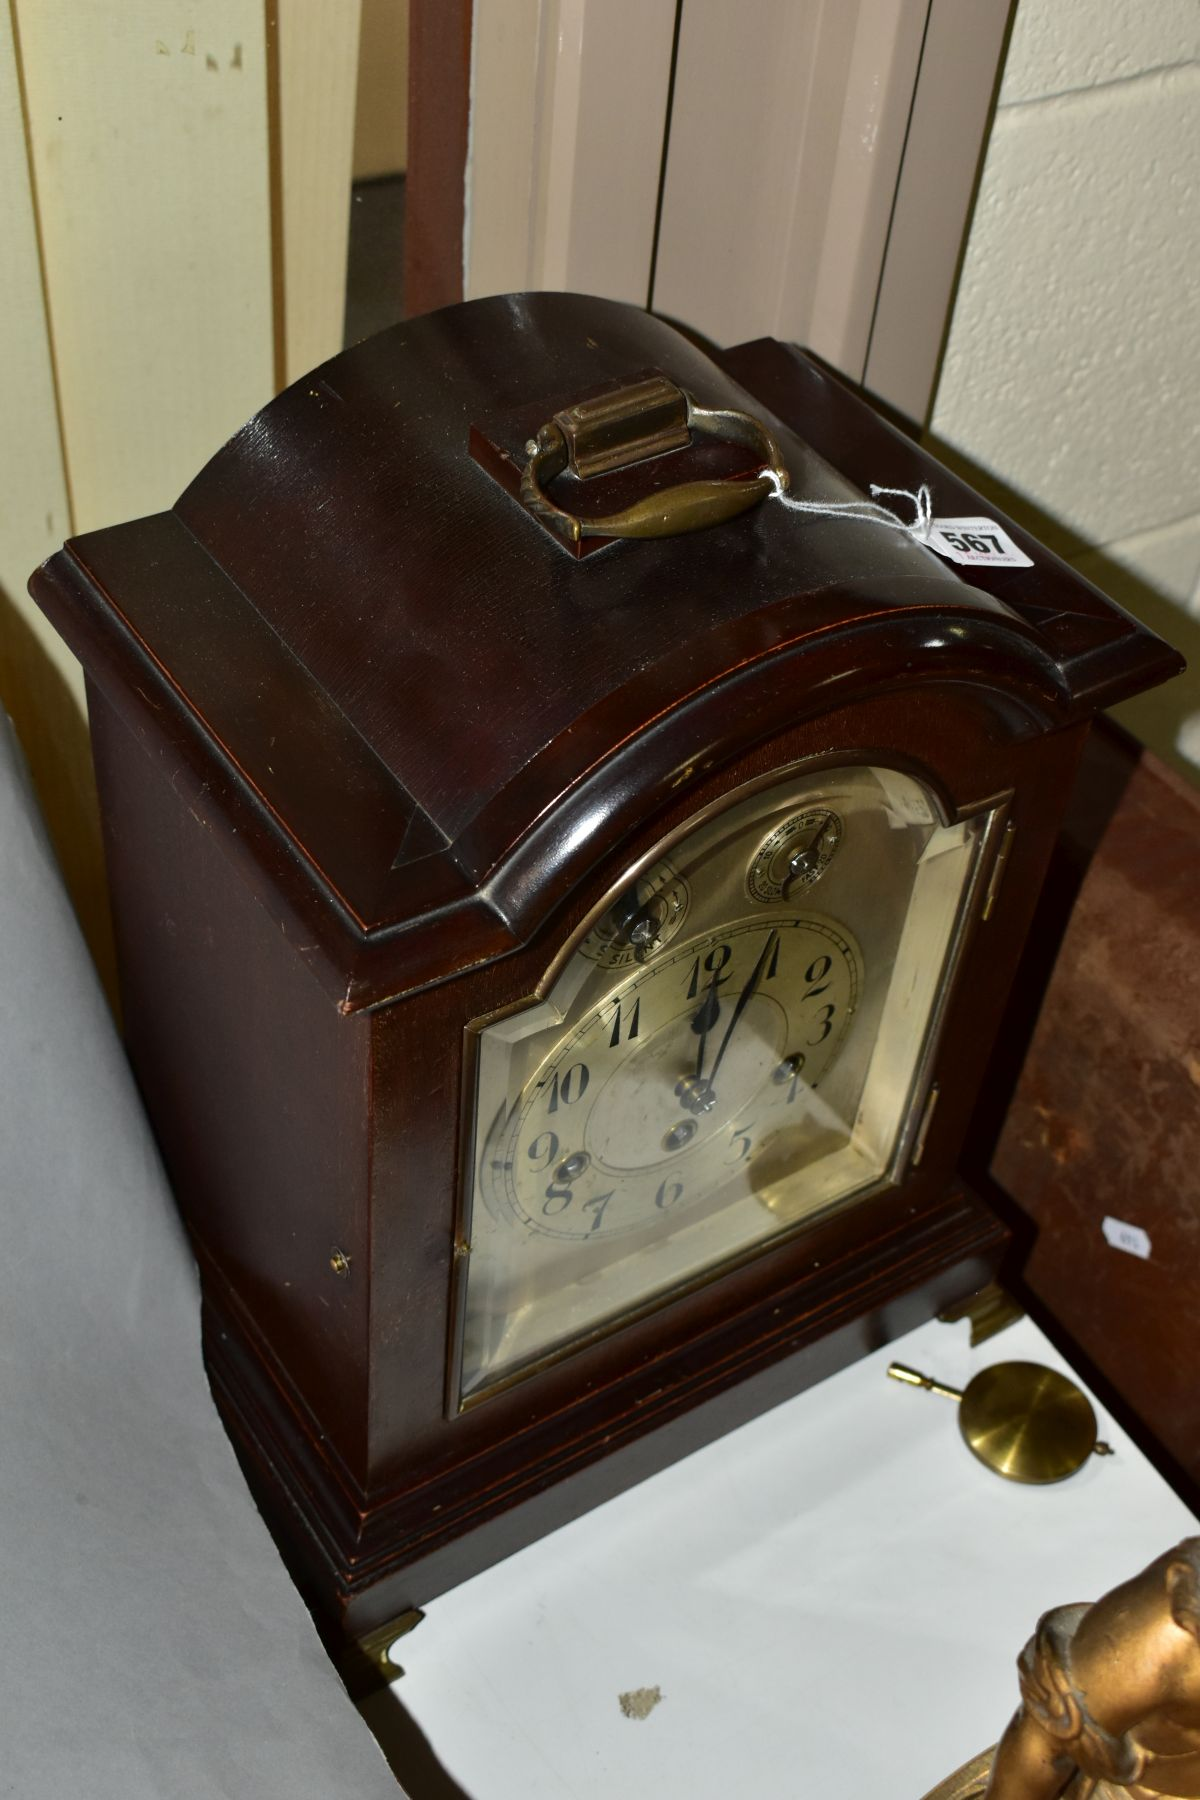 AN EARLY 2OTH CENTURY MAHOGANY STAINED GEORGE III STYLE BRACKET CLOCK, silvered dial with Arabic - Image 3 of 5